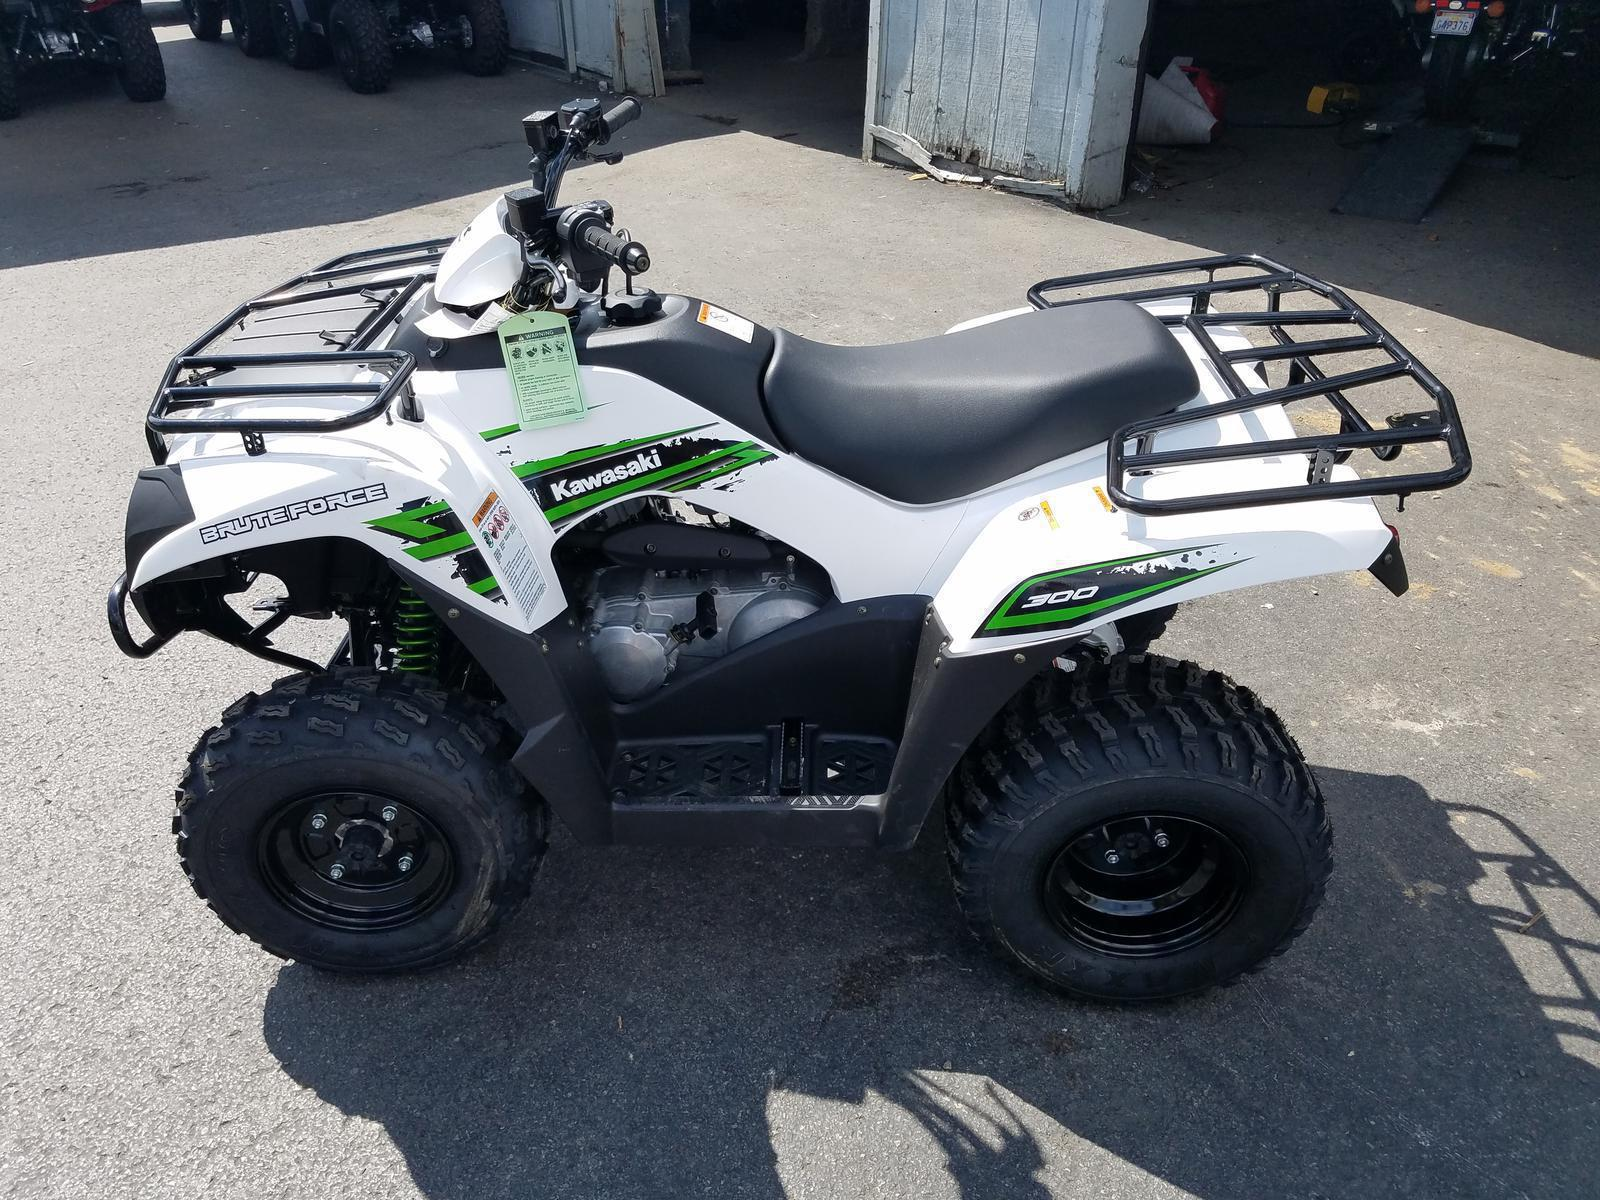 hight resolution of 2018 kawasaki brute force 300 for sale in bridgeport wv leeson s import motors 844 533 7667